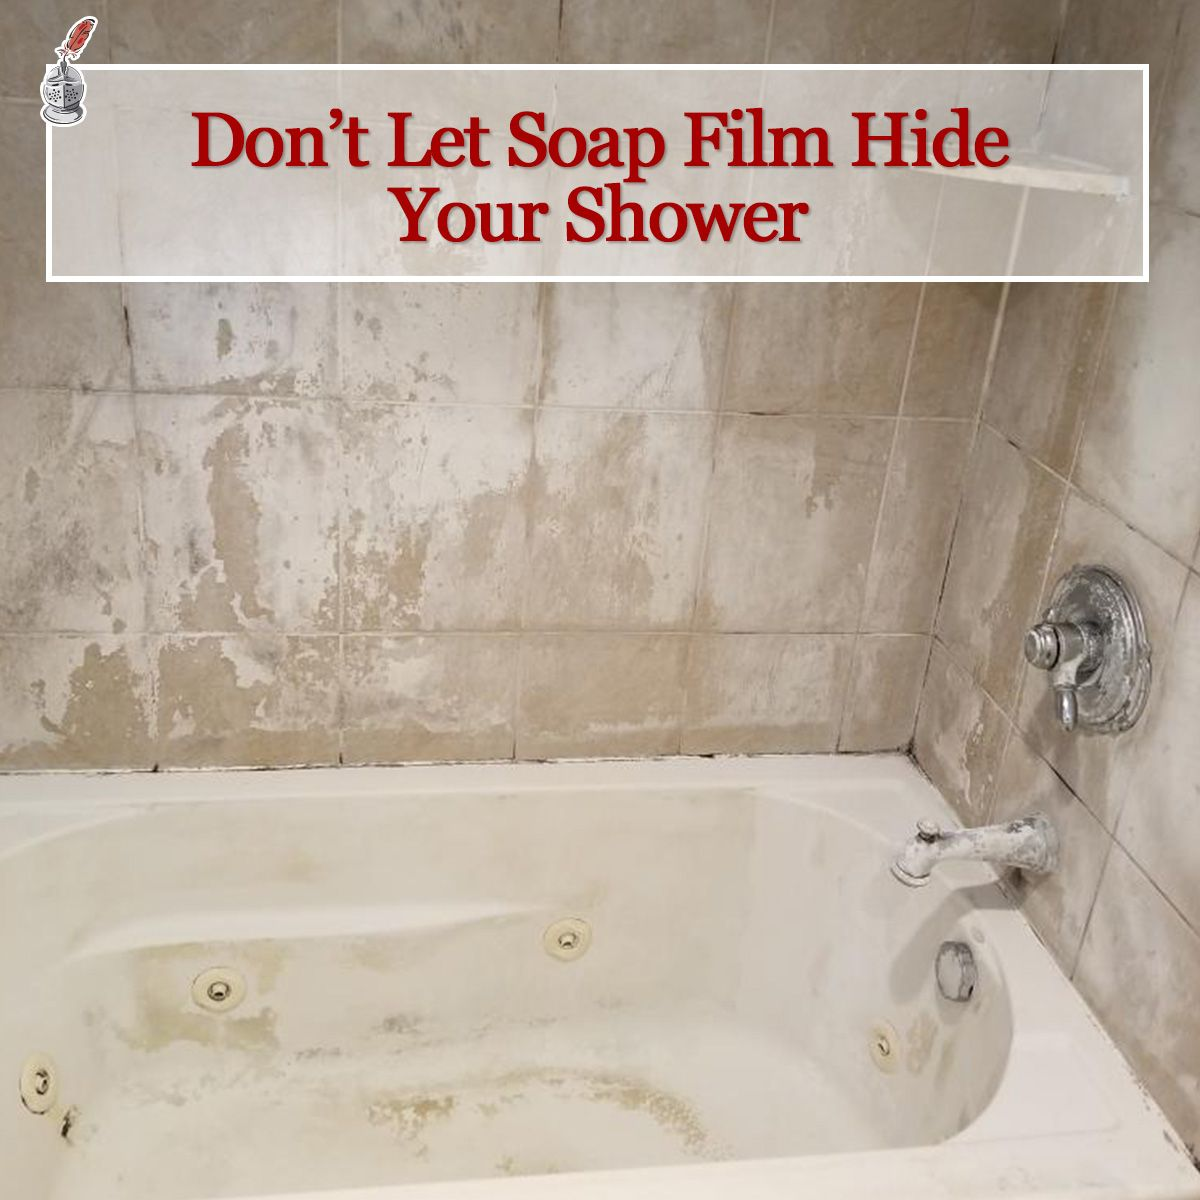 Don't Let Soap Film Hide Your Shower